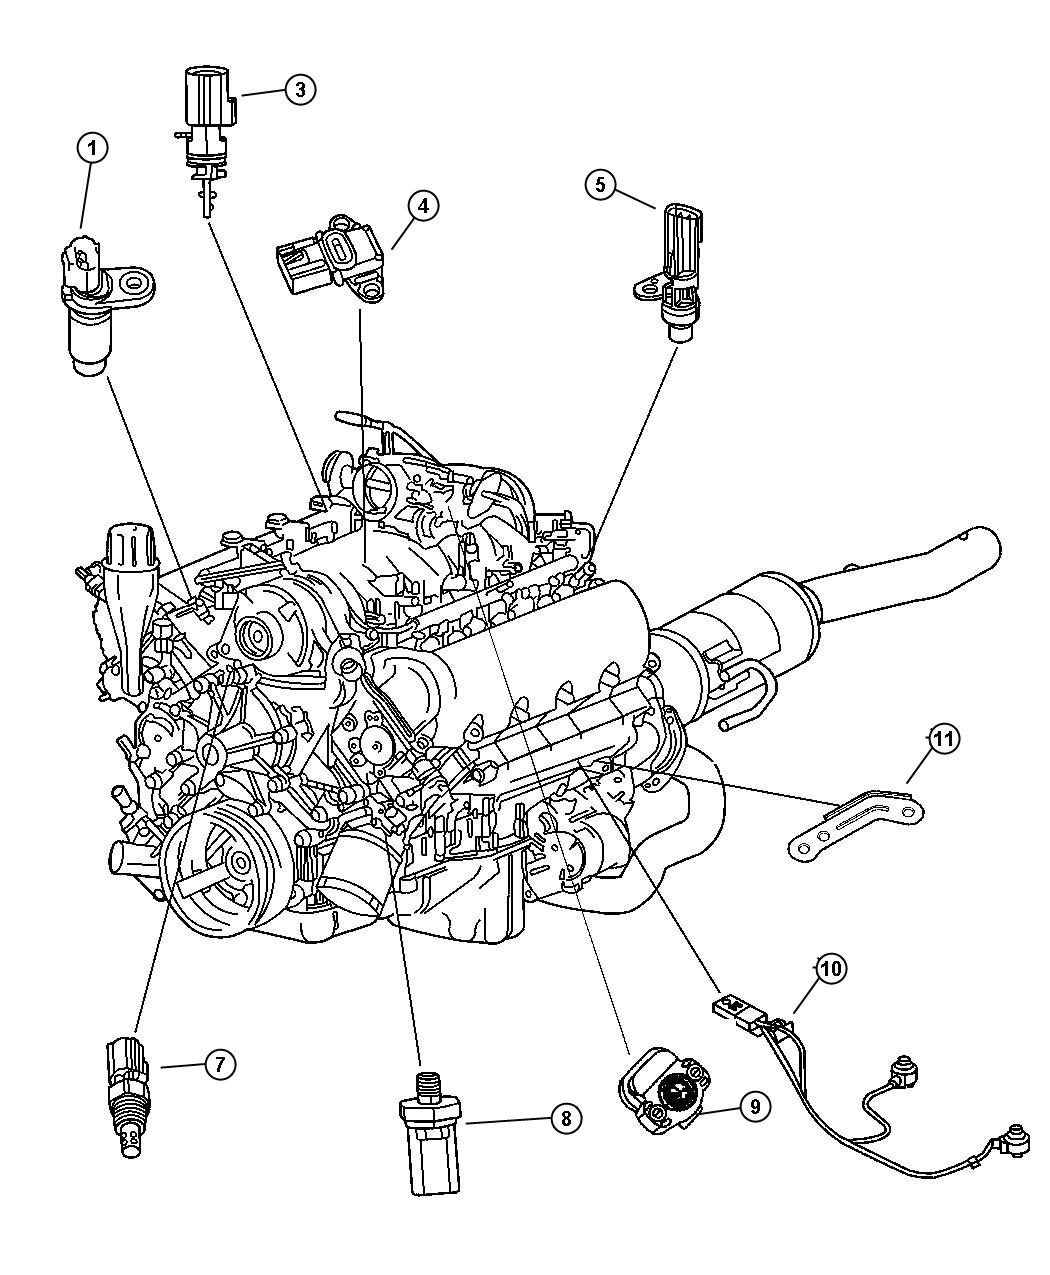 2002 Dodge Caravan Map Sensor Location on 2005 dodge neon fuse box diagram